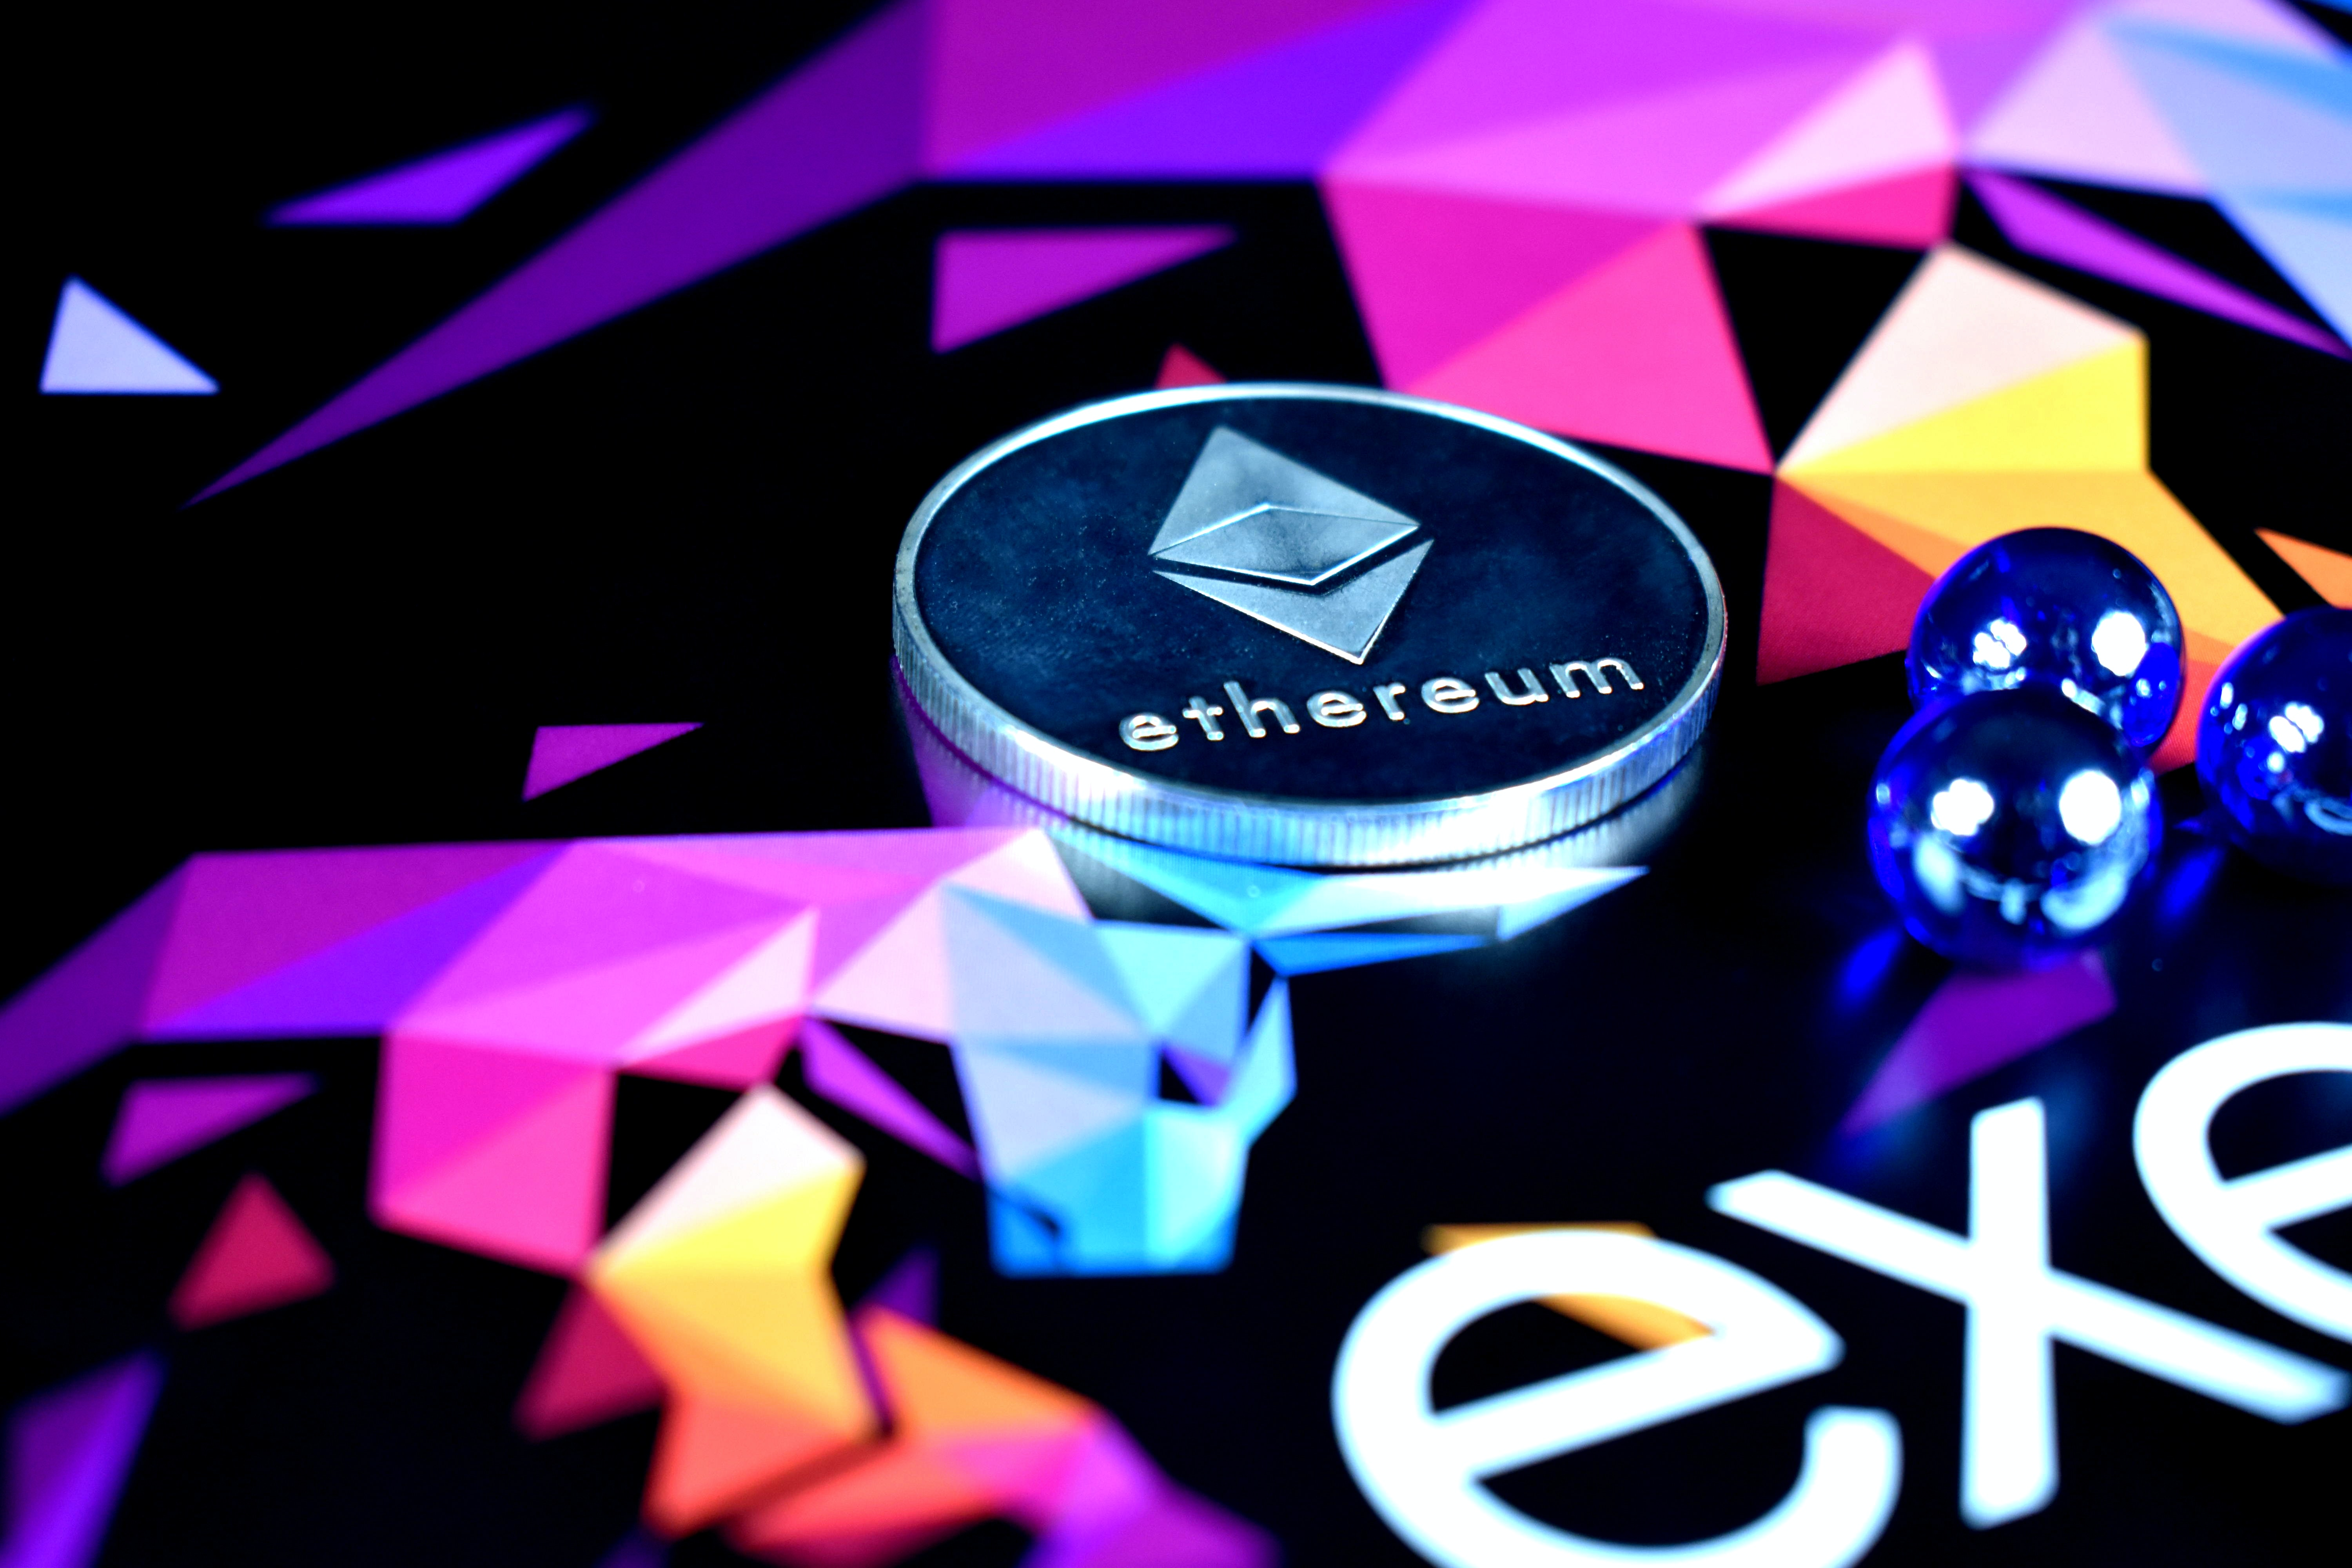 An Ethereum coin being approached by three blue marbles; image by Clifford Photography, via Unsplash.com.